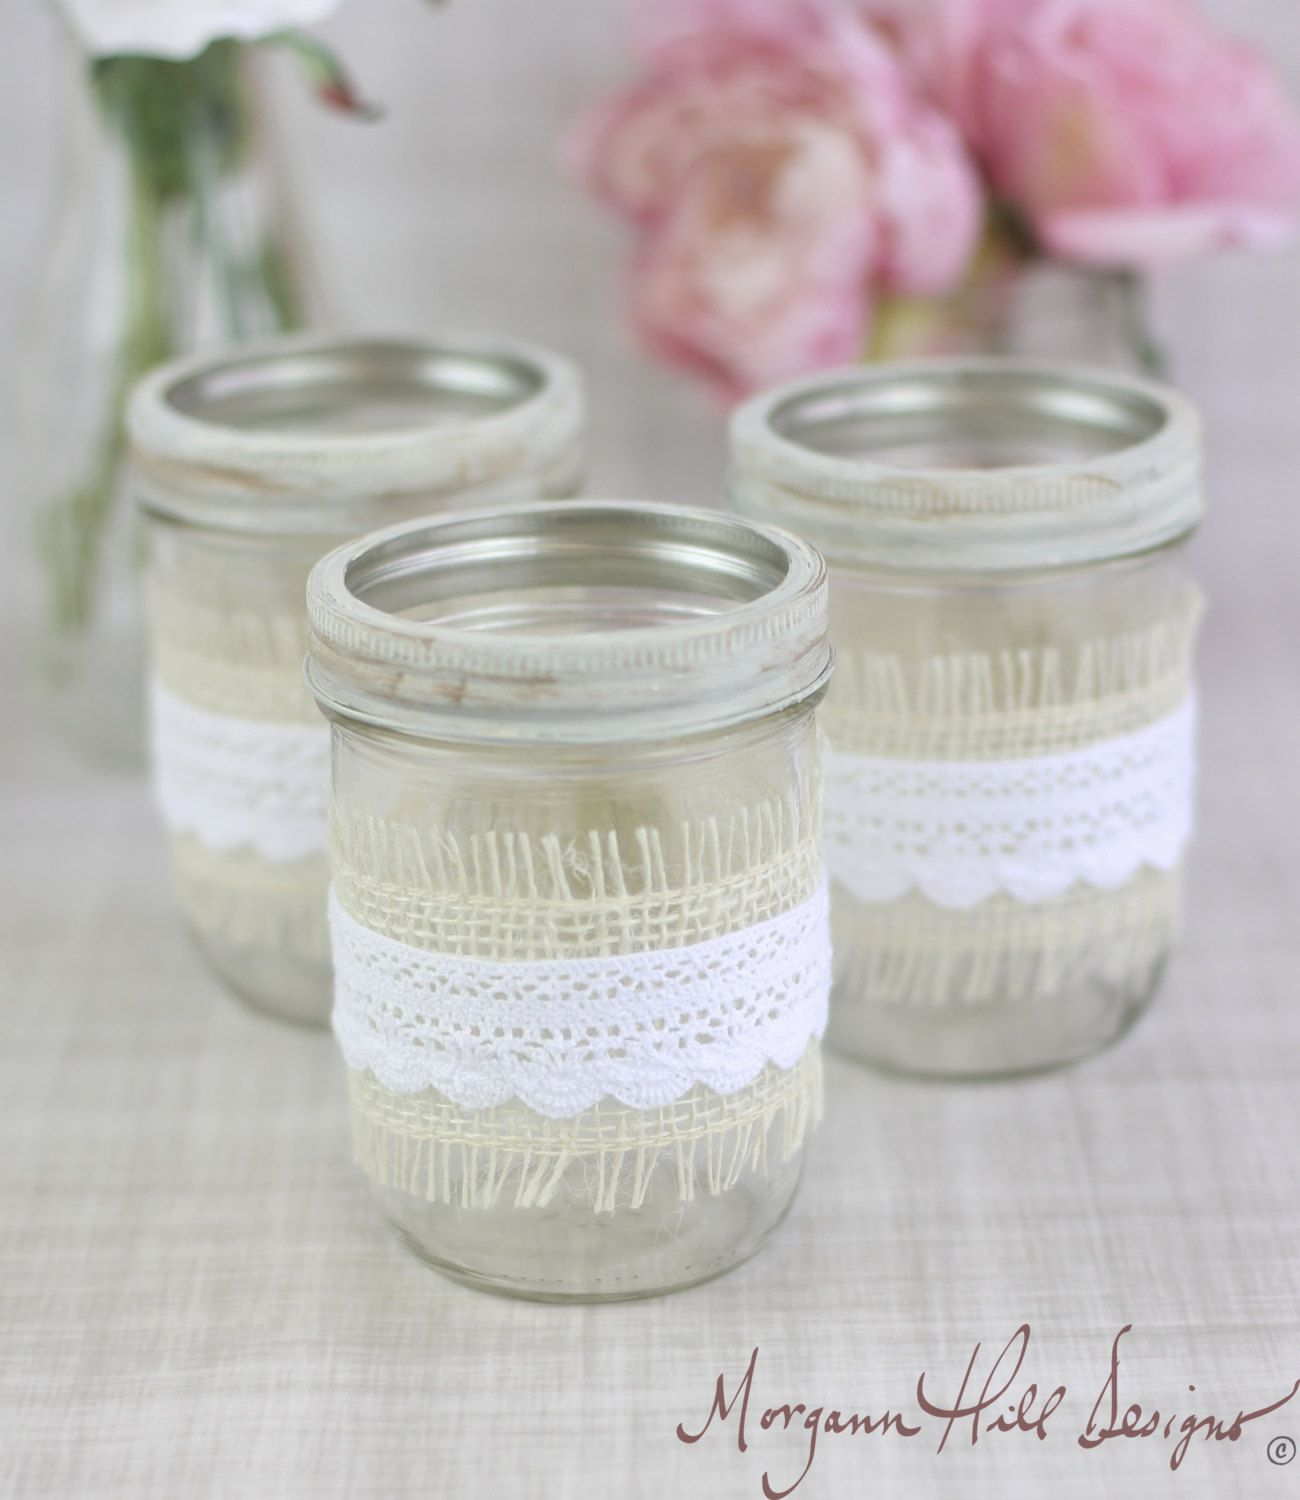 Mason Jar Wedding Centerpieces Vases With Burlap And Lace Rustic Country  Wedding Decorations SET OF 12 (Item Number Austen Birthday Party?